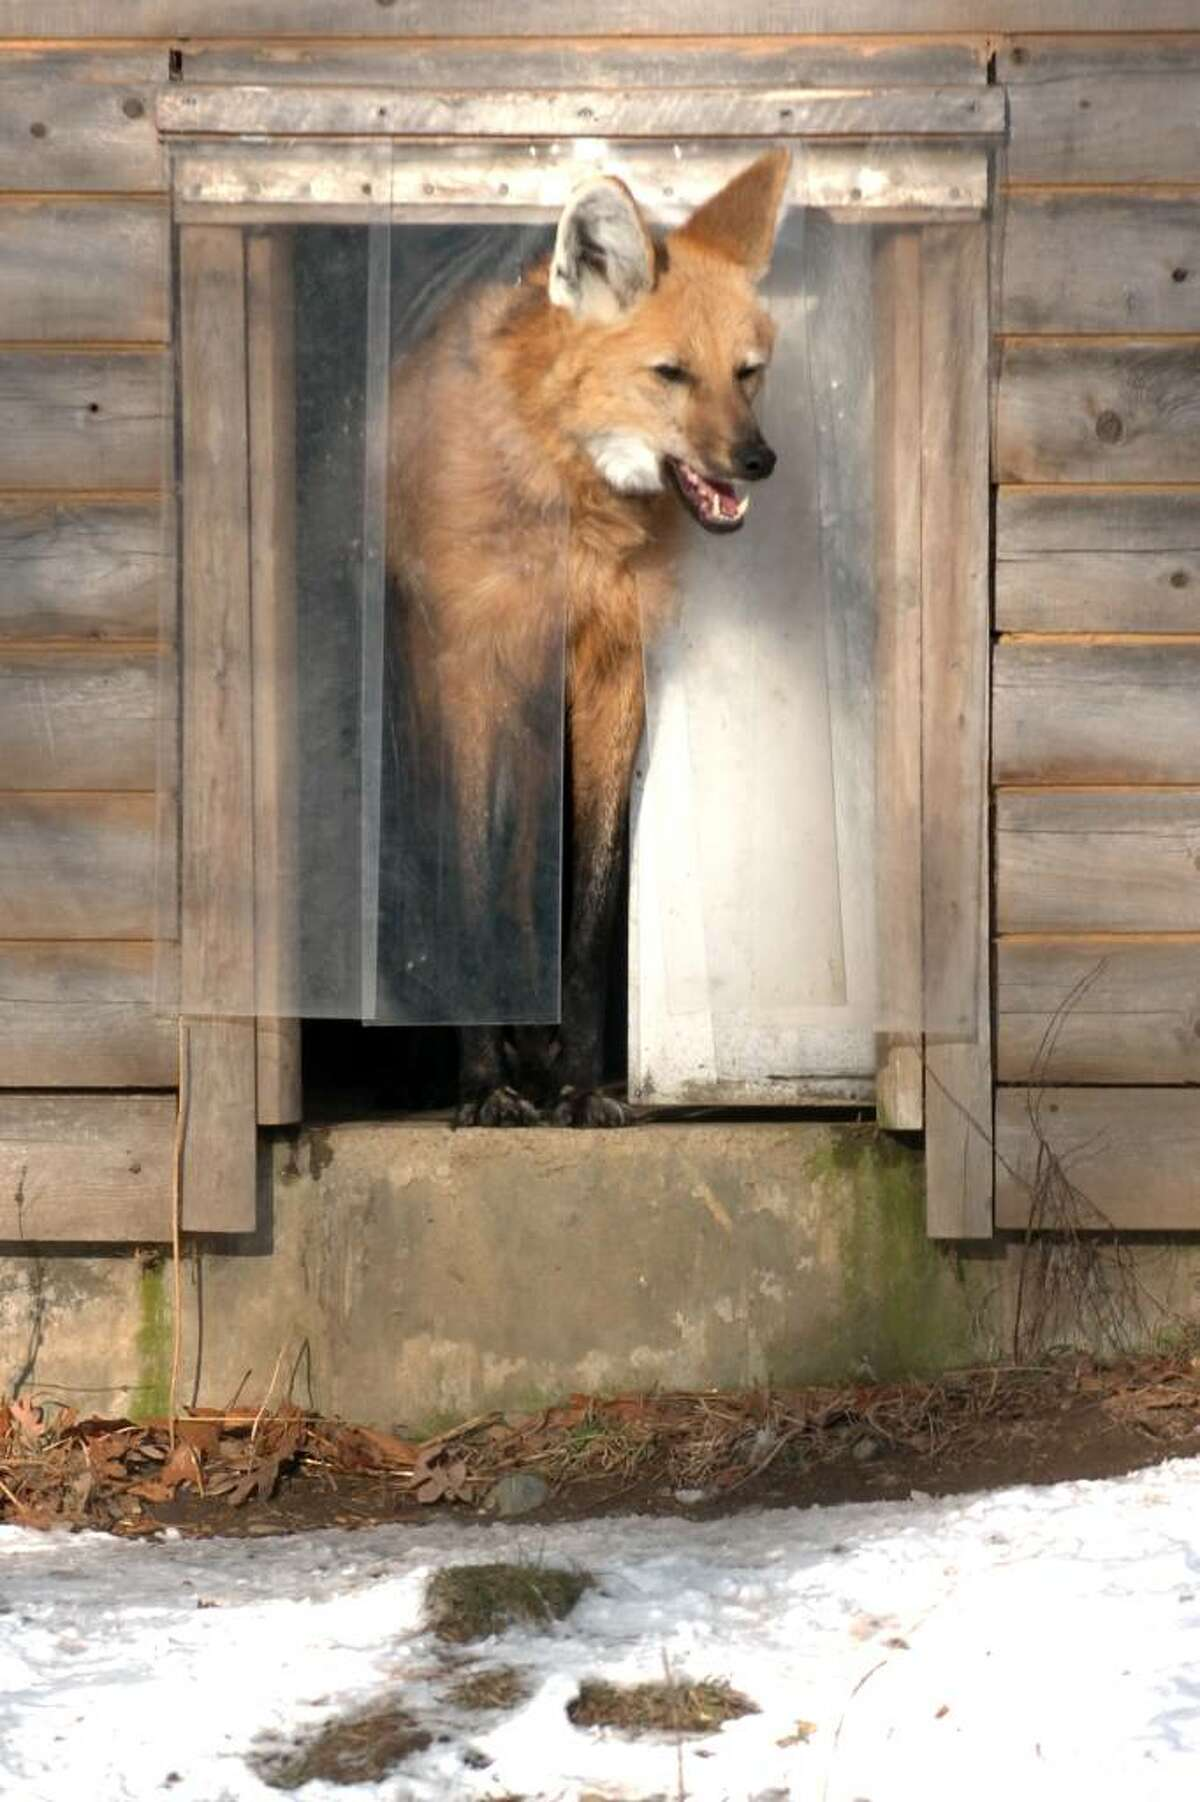 A Maned wolf looks out from the warmth of its hutch at Connecticut's Beardsley Zoo, in Bridgeport, Conn. Jan. 4th, 2010.